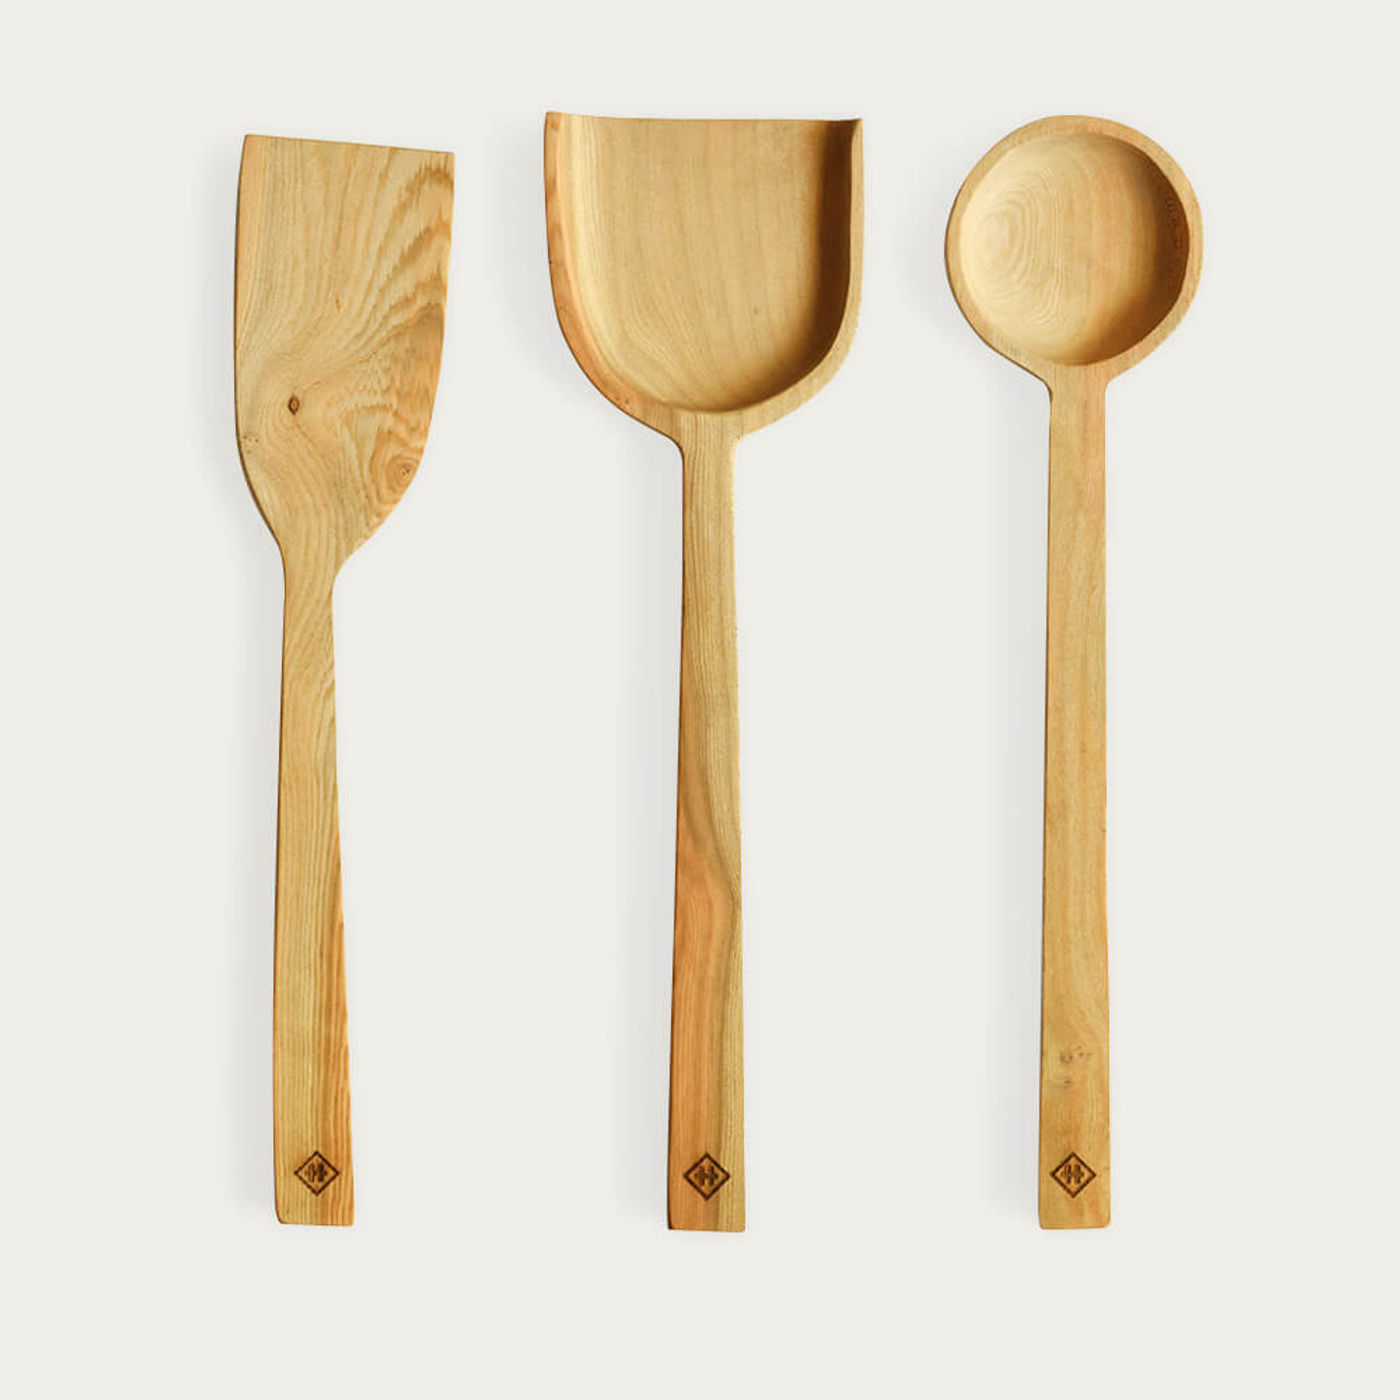 Tan Set of 3 Wooden Spoons   Bombinate